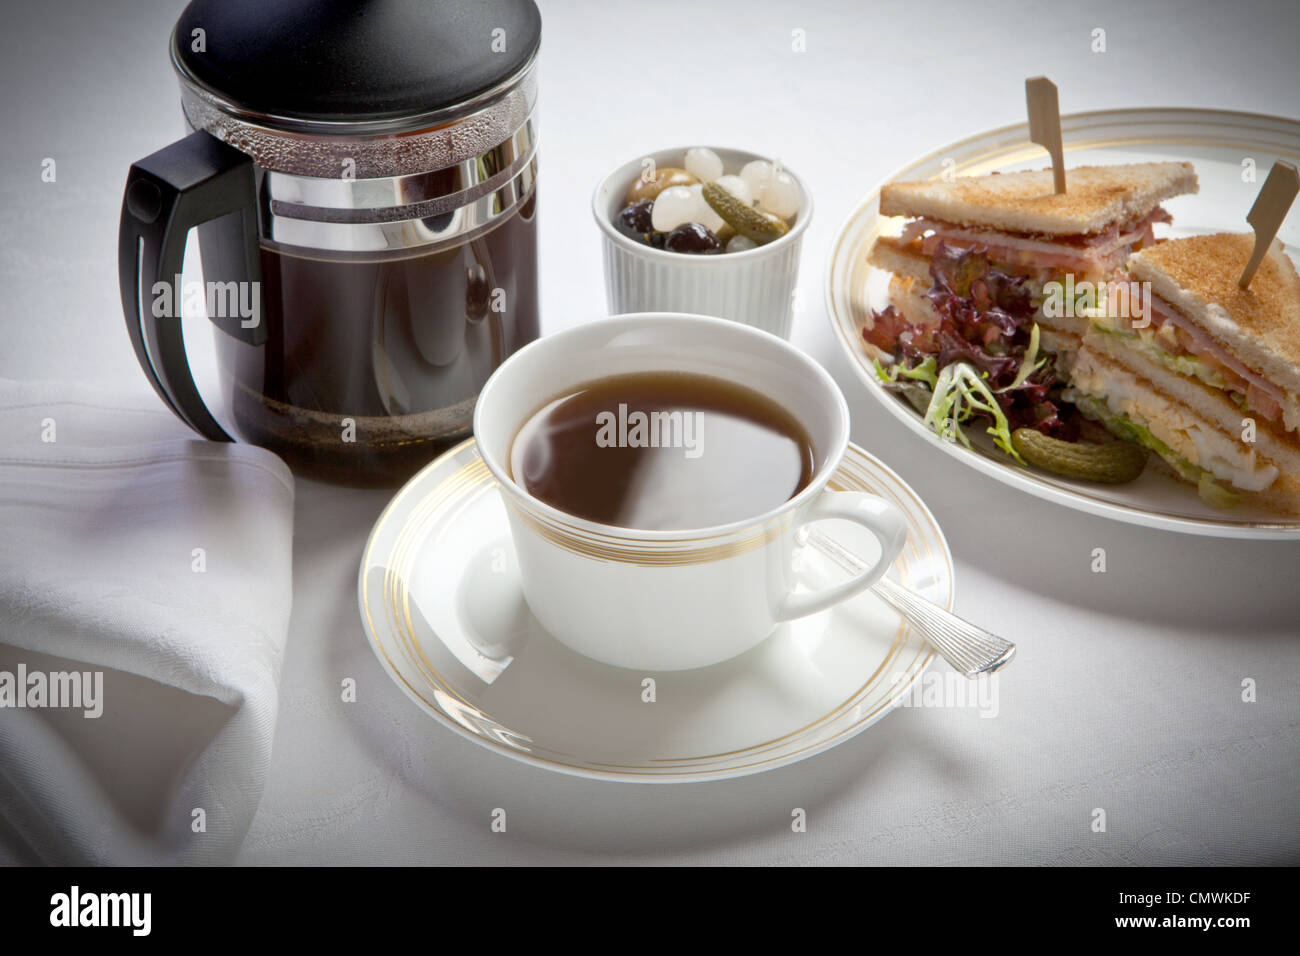 cup of black coffee with sandwiches, laid out on a white linen tablecloth - Stock Image